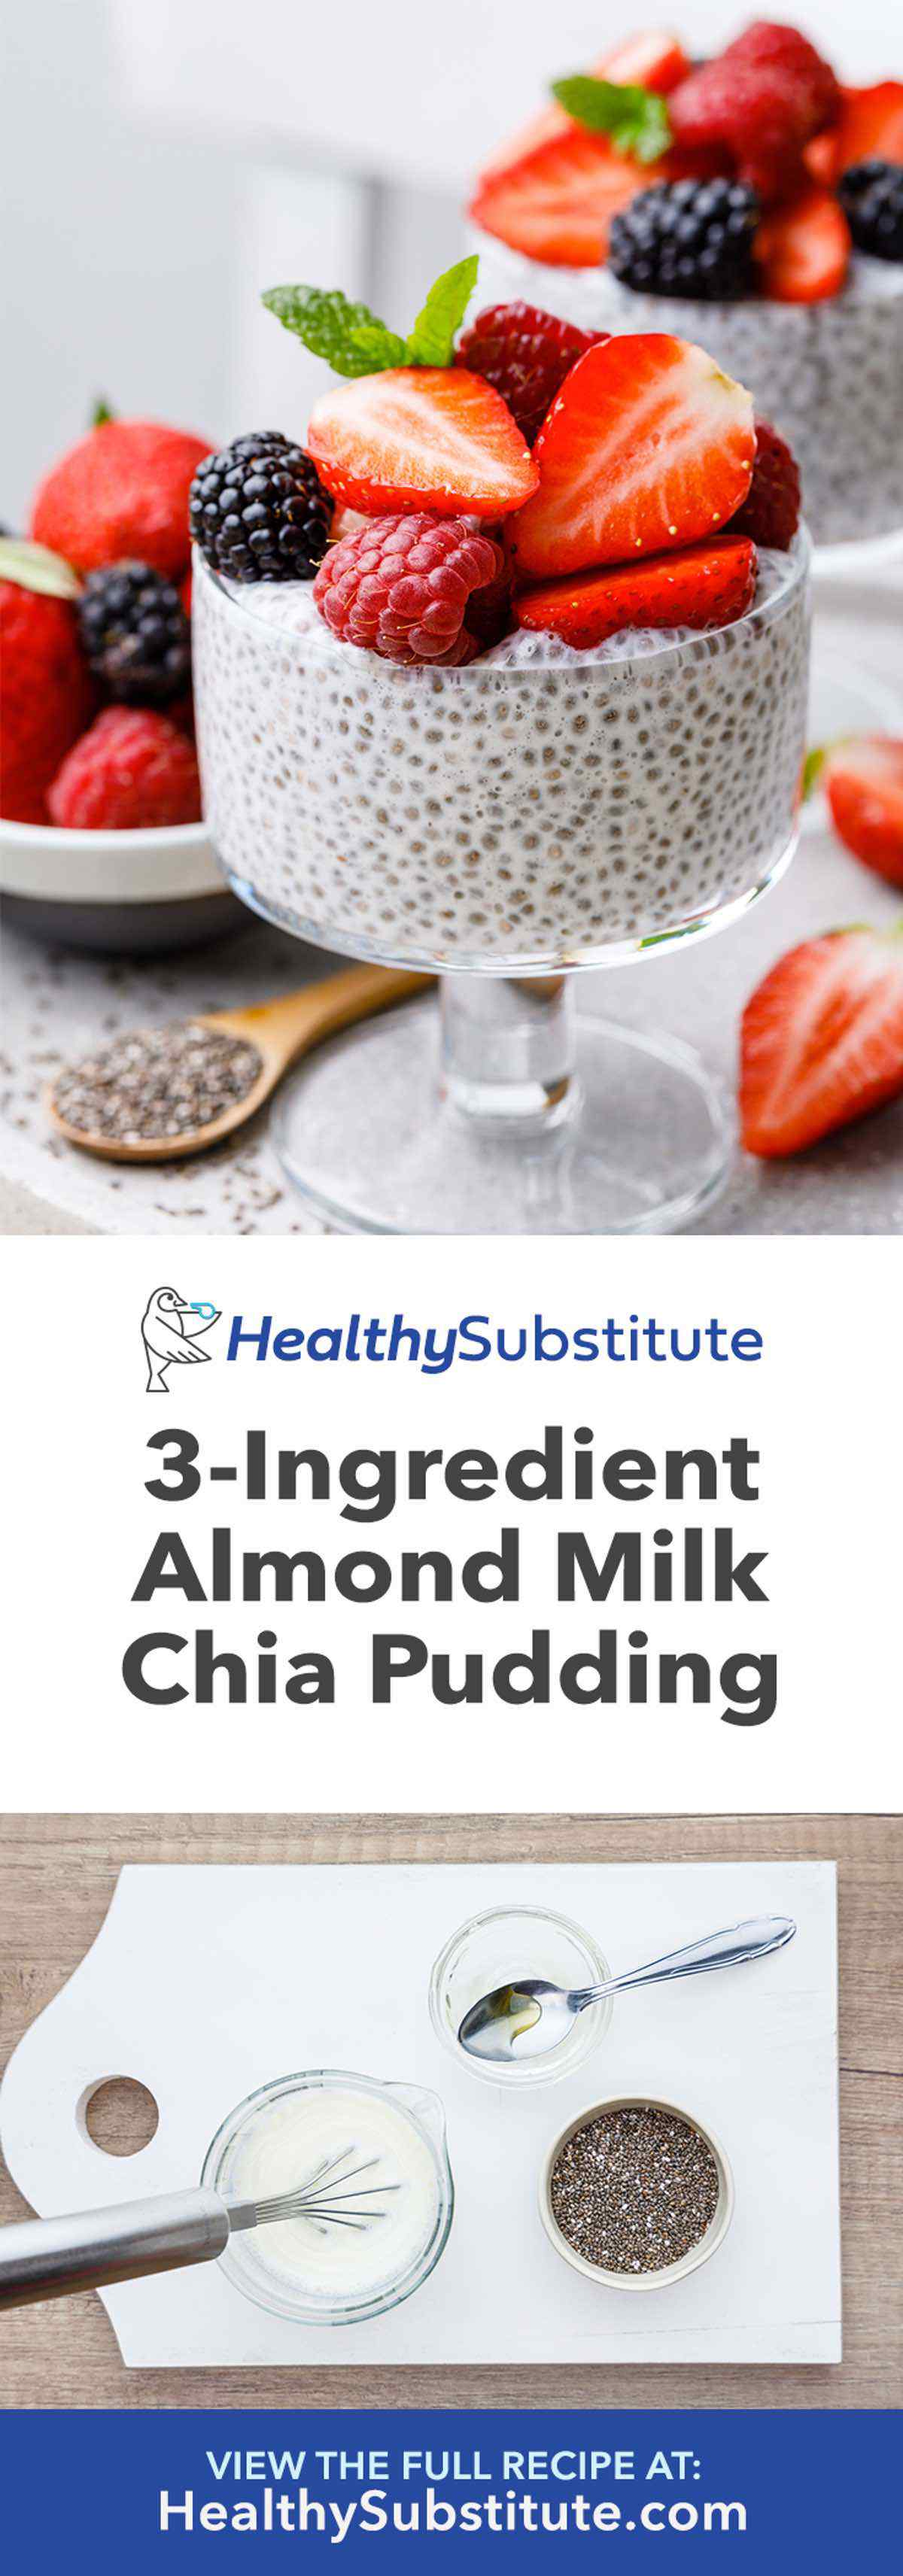 Easy 3-Ingredient Chia Seed Pudding with Almond Milk